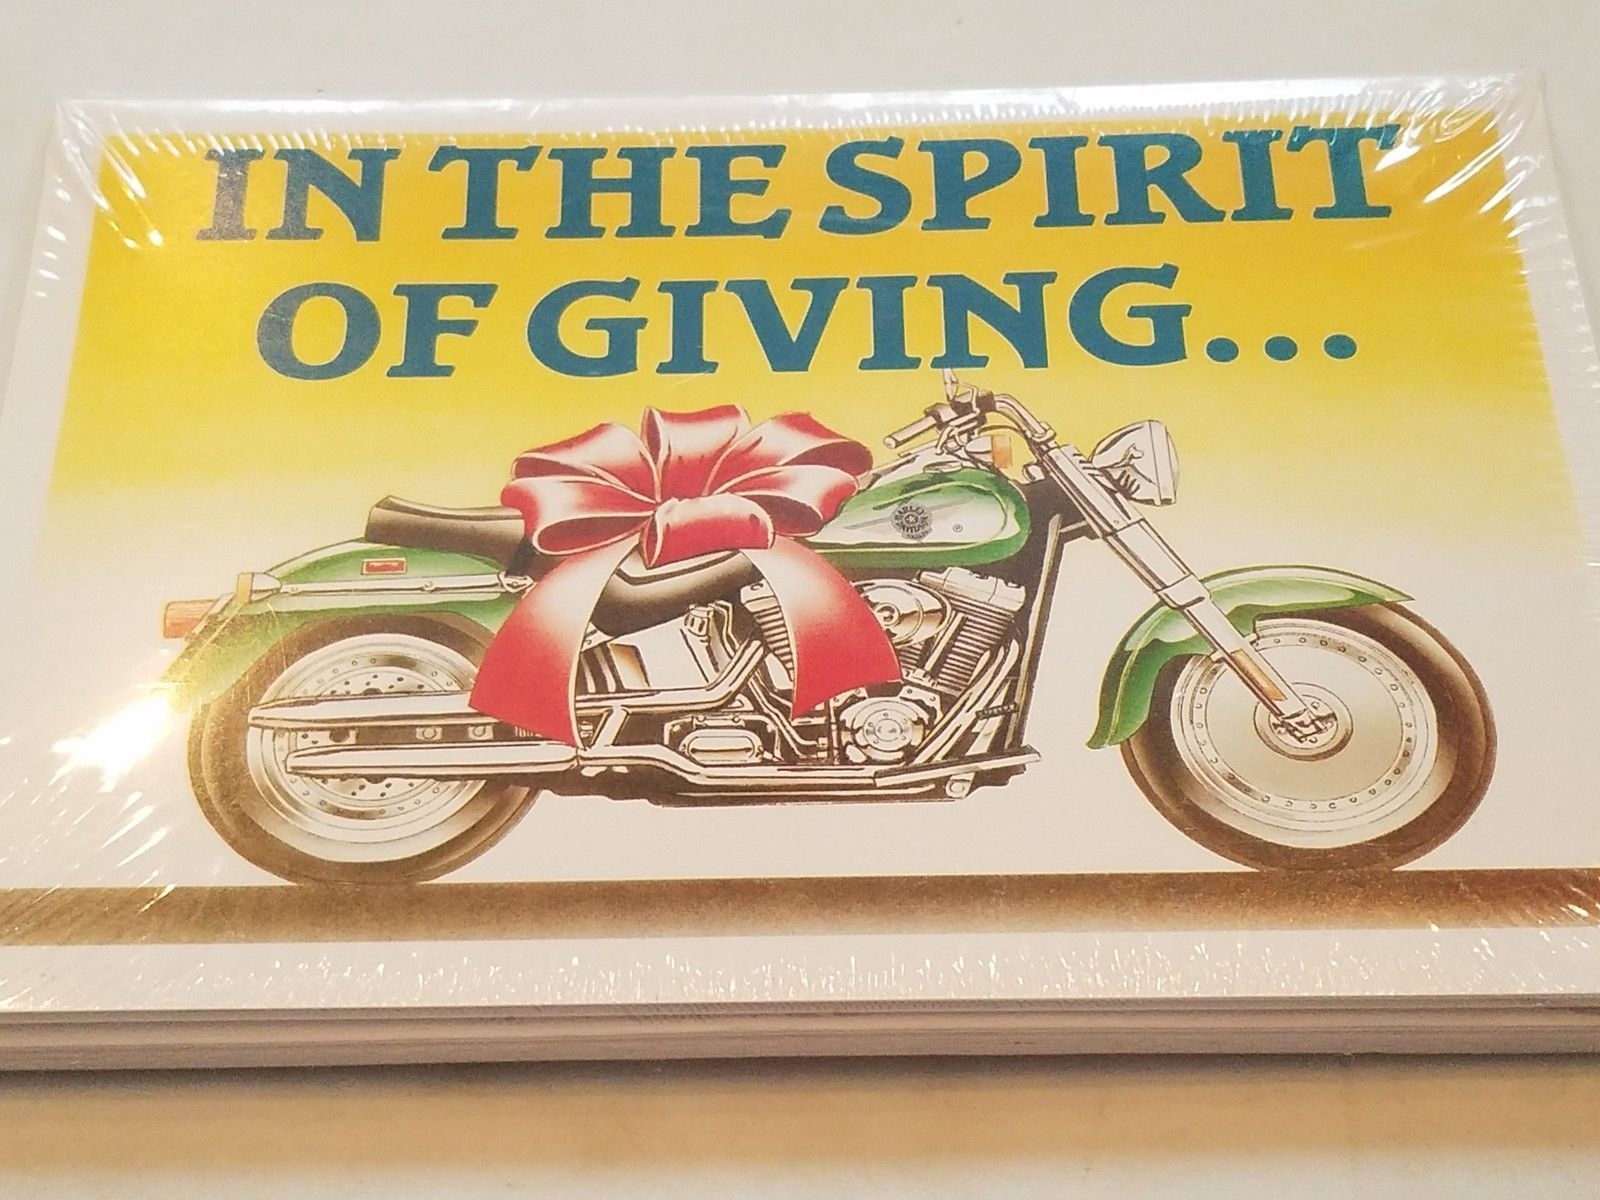 Harley Davidson Christmas Cards #X609 Harley For Gift In Spirit Of ...